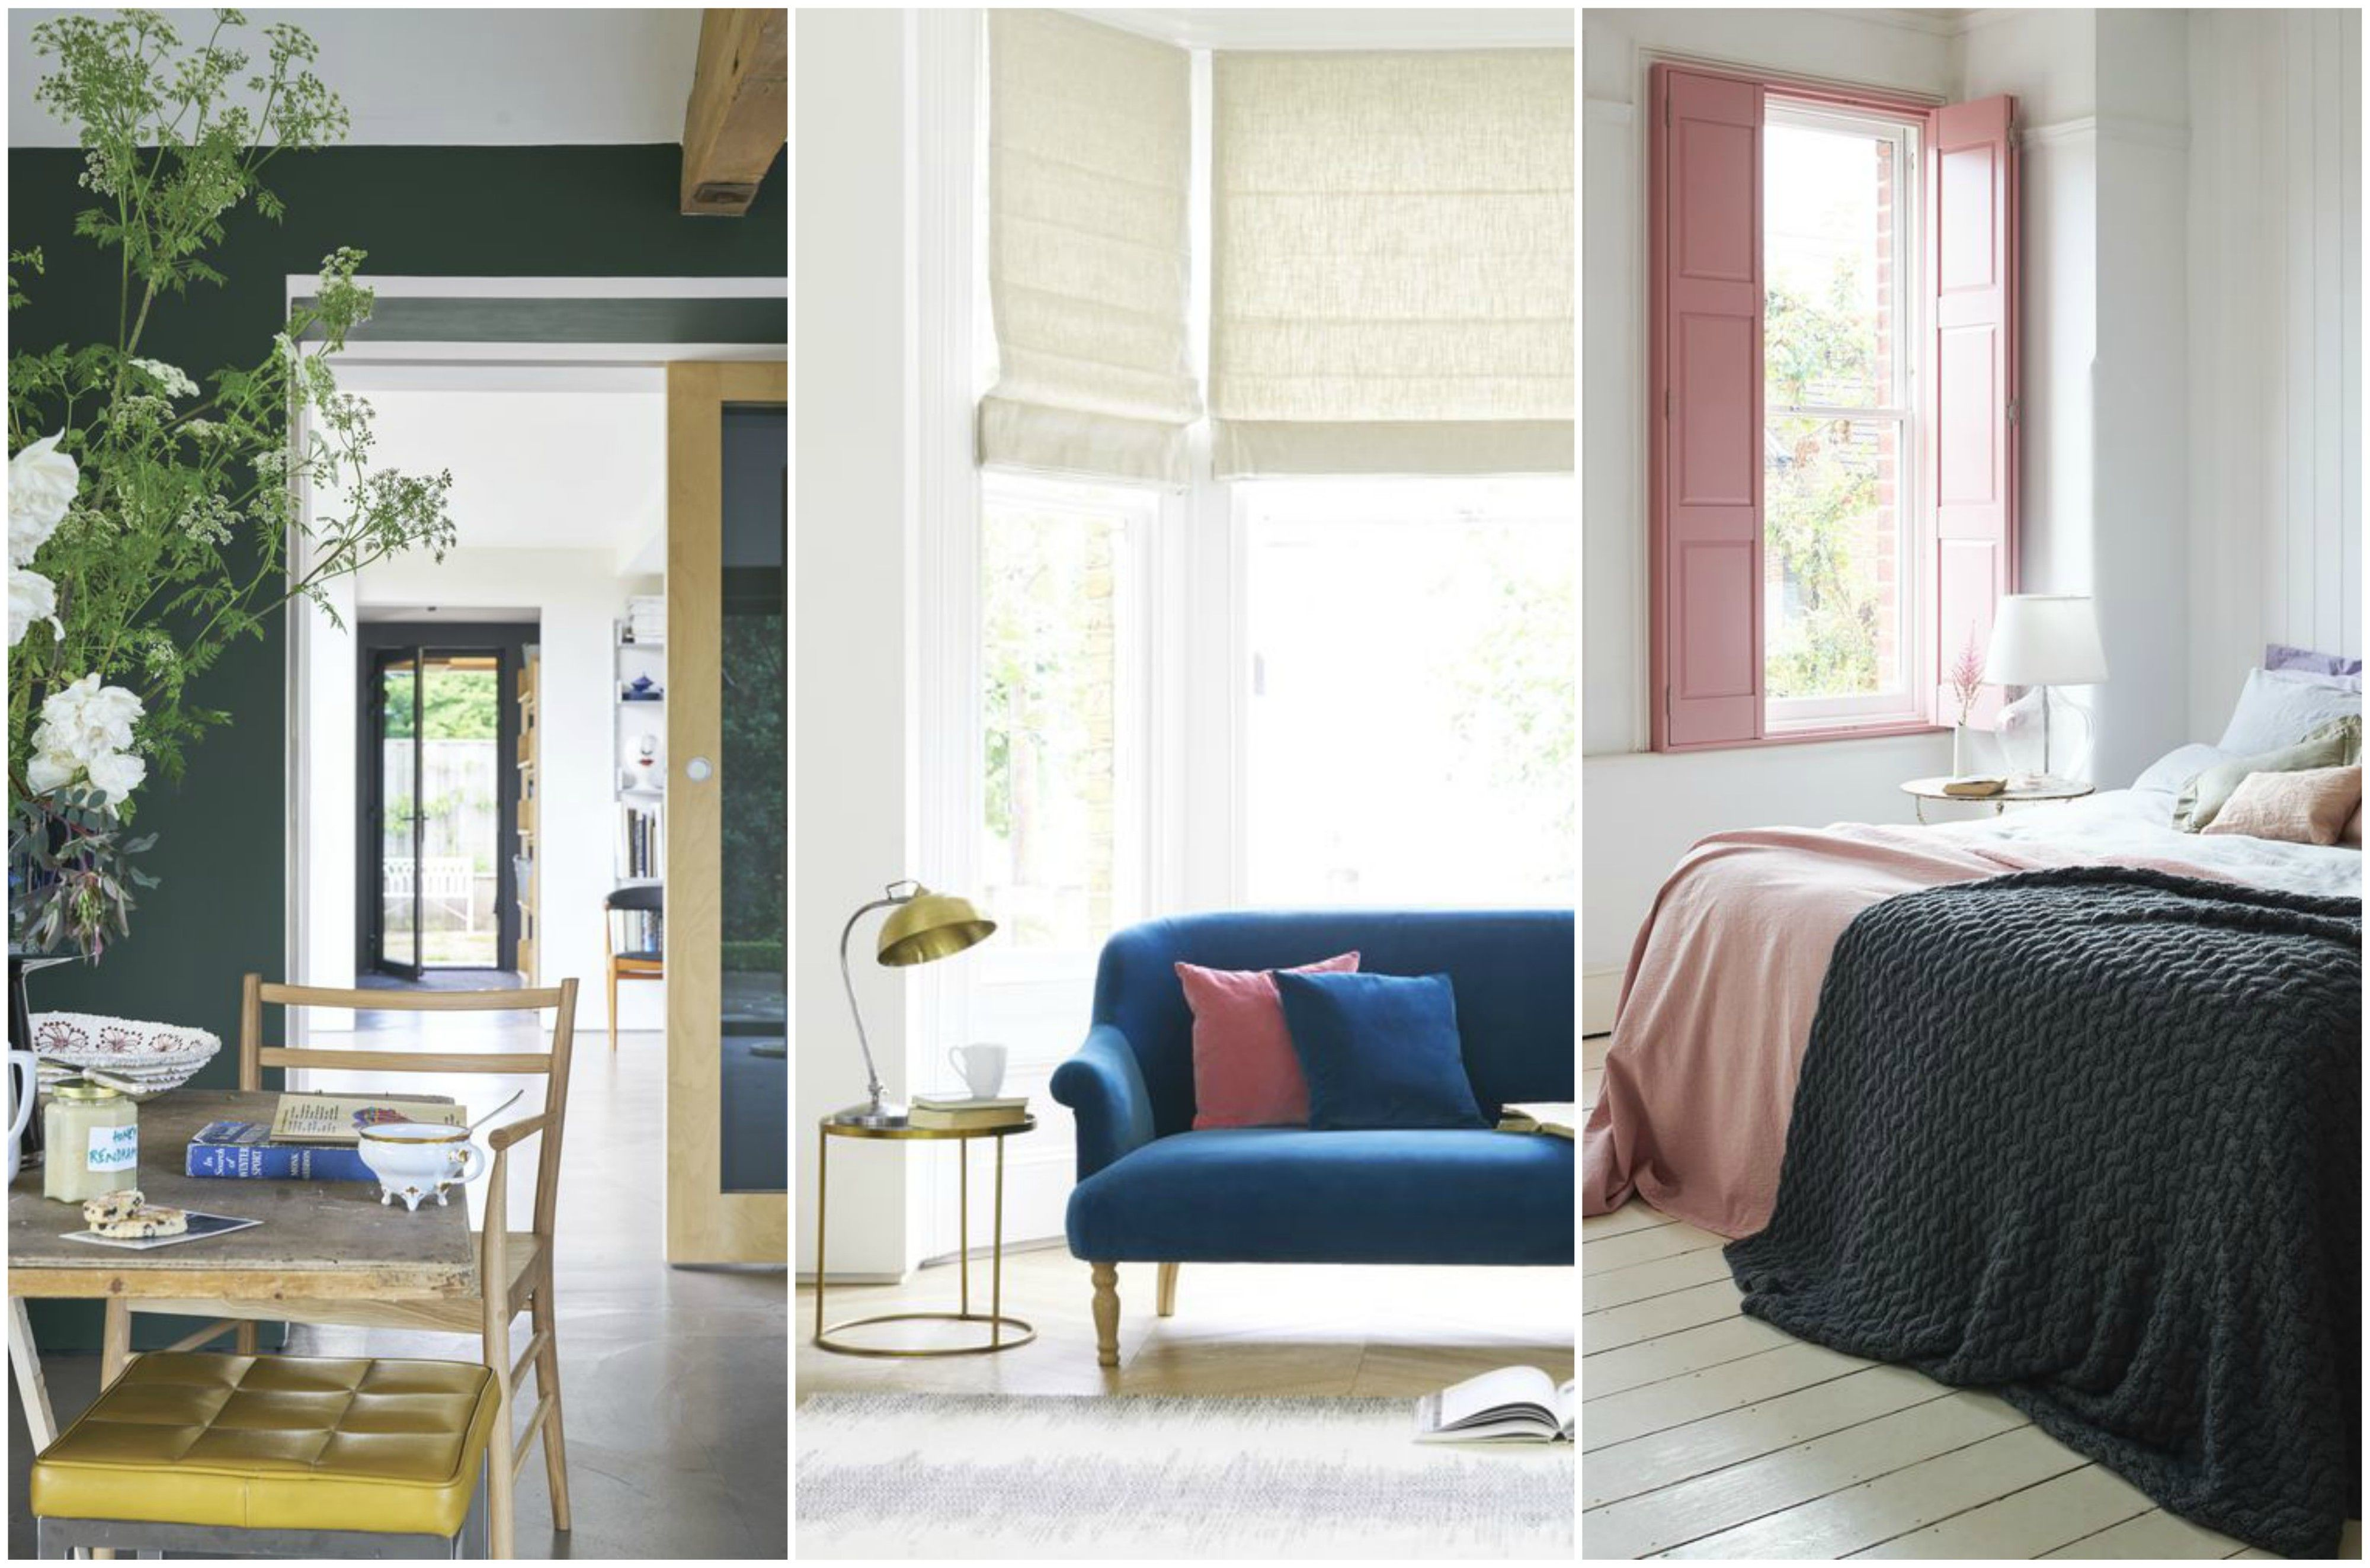 12 clever decorating tricks to create a sense of space